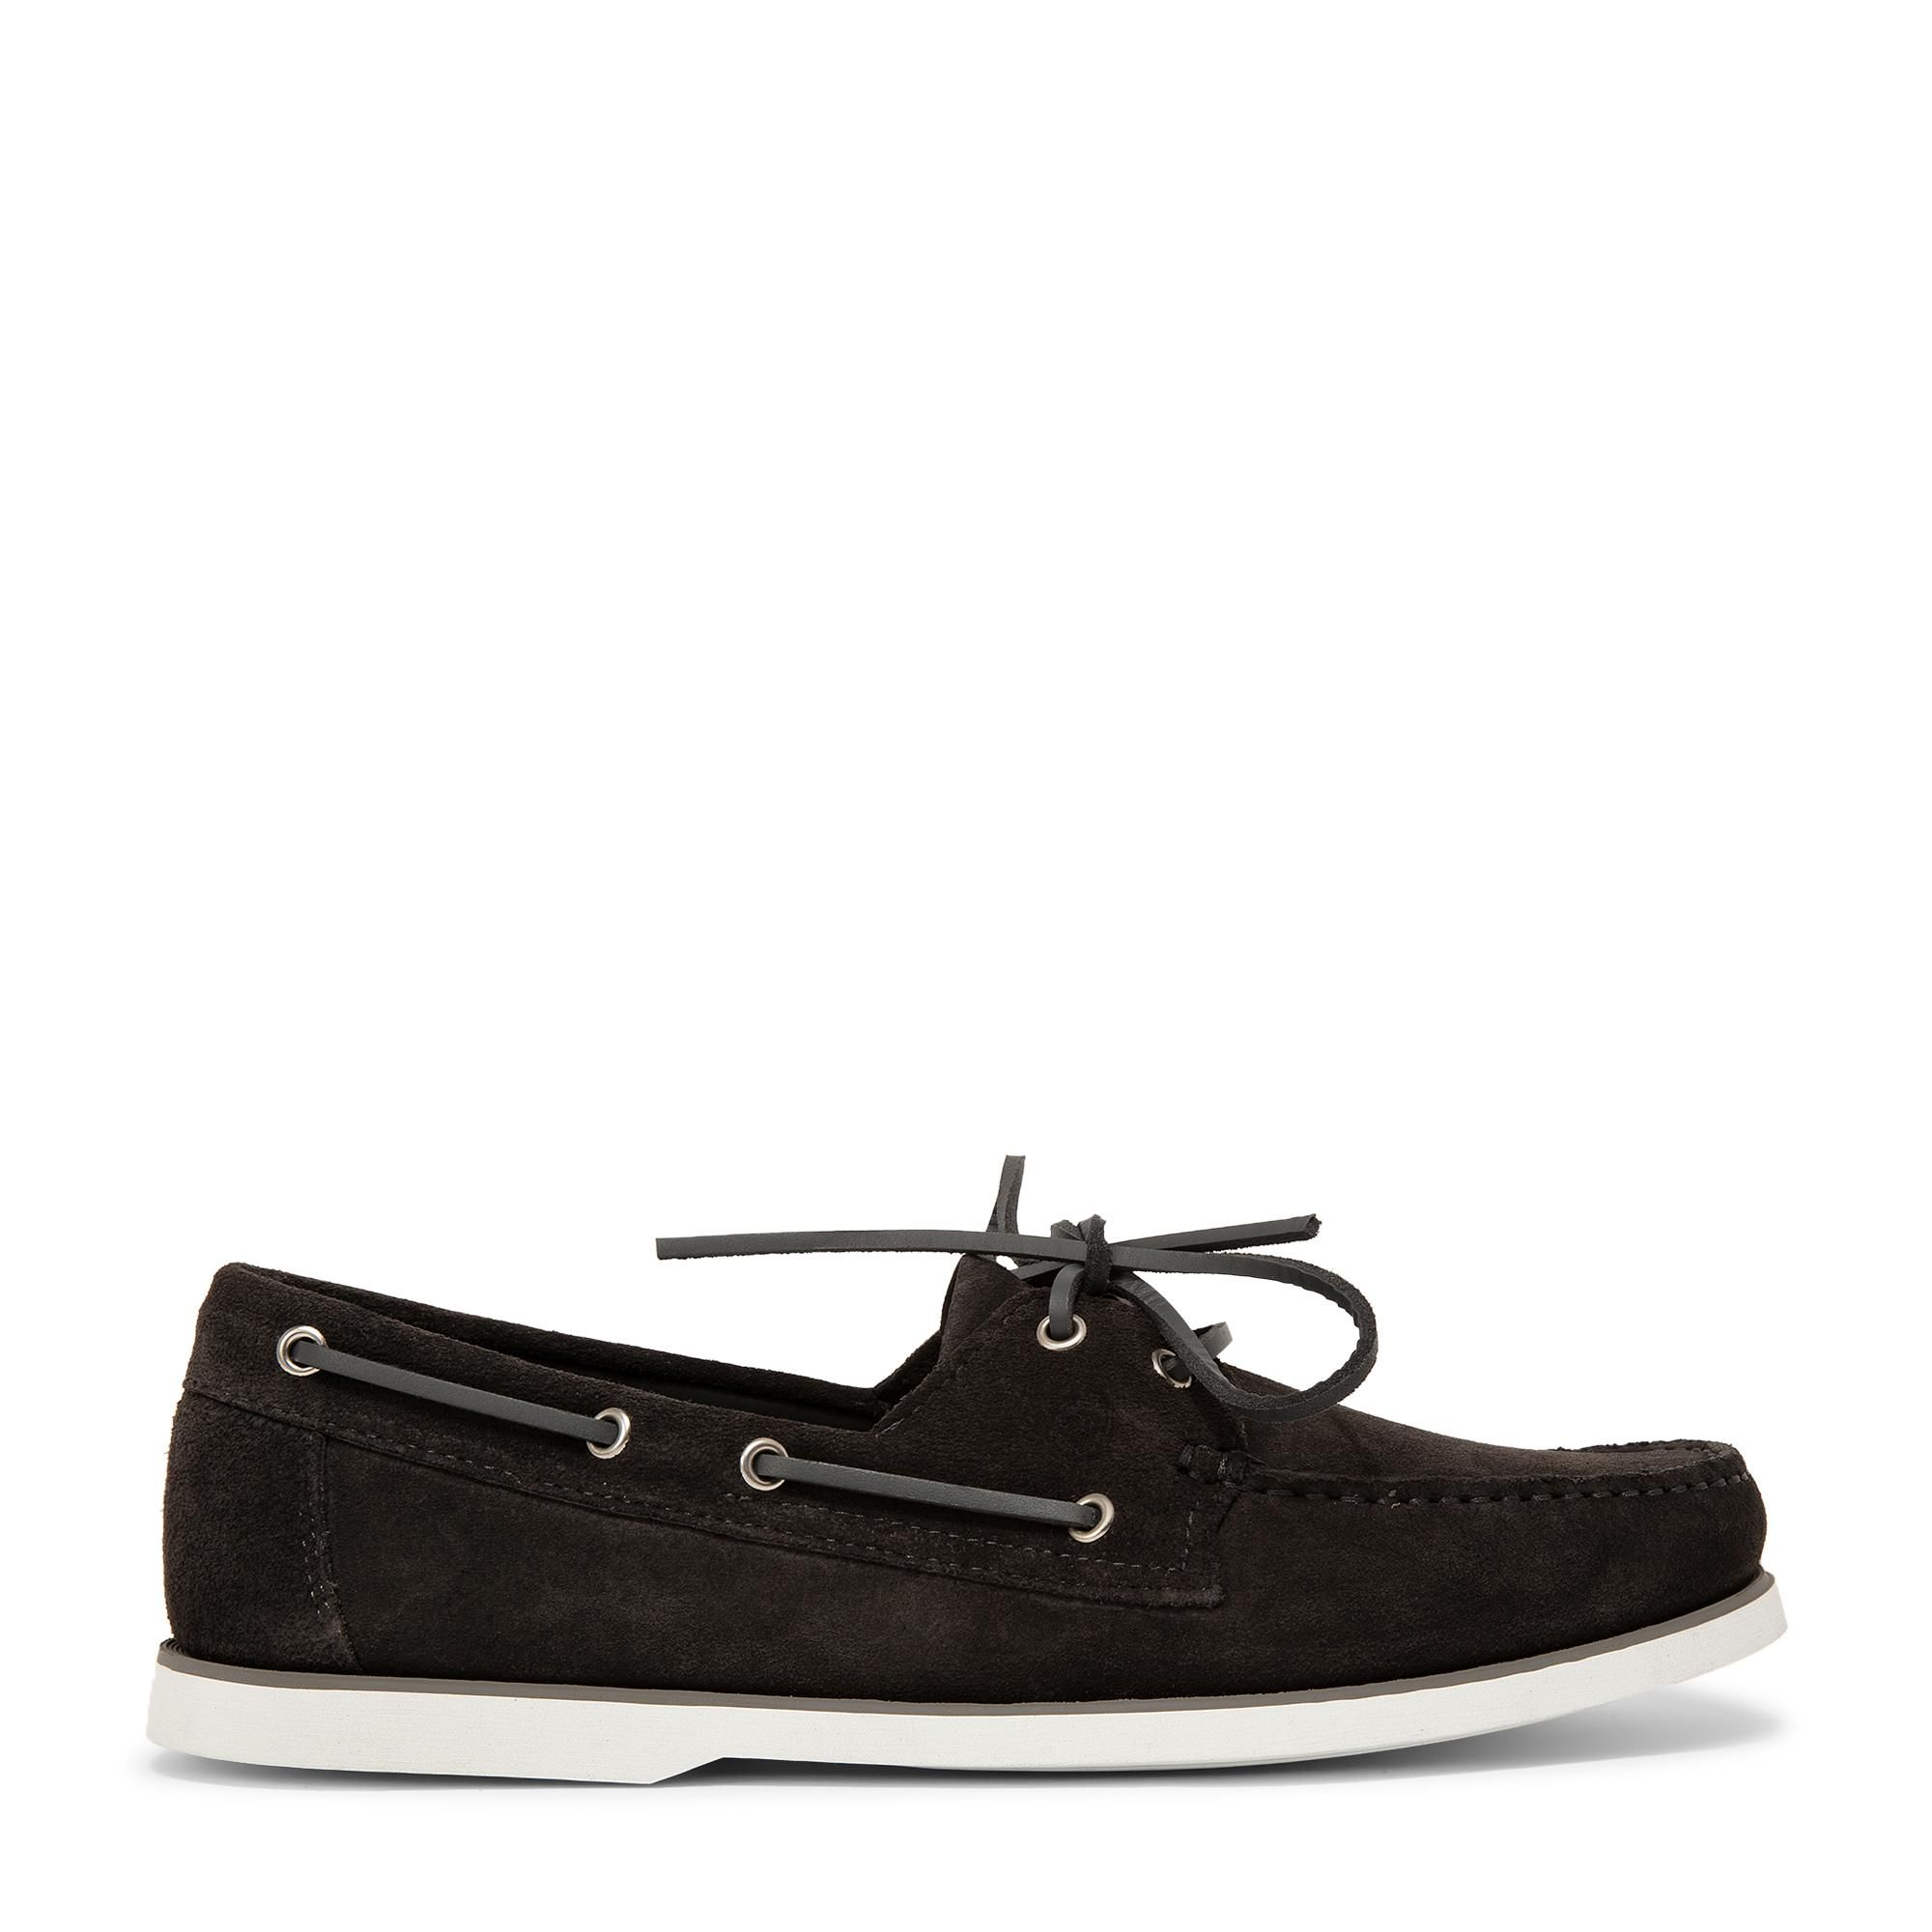 Dynamic suede boat shoes